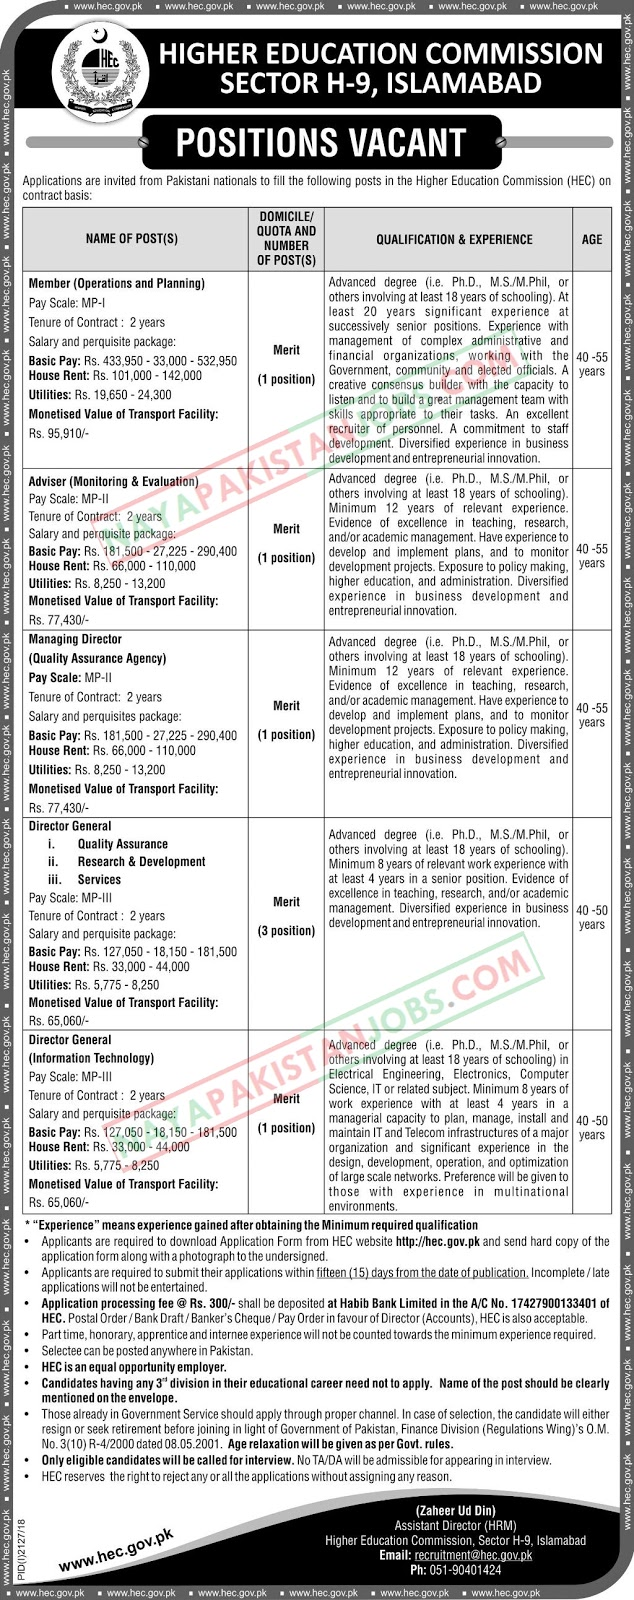 Latest Vacancies Announced in Higher Education Commission Islamabad 12 November 2018 - Naya Pakistan